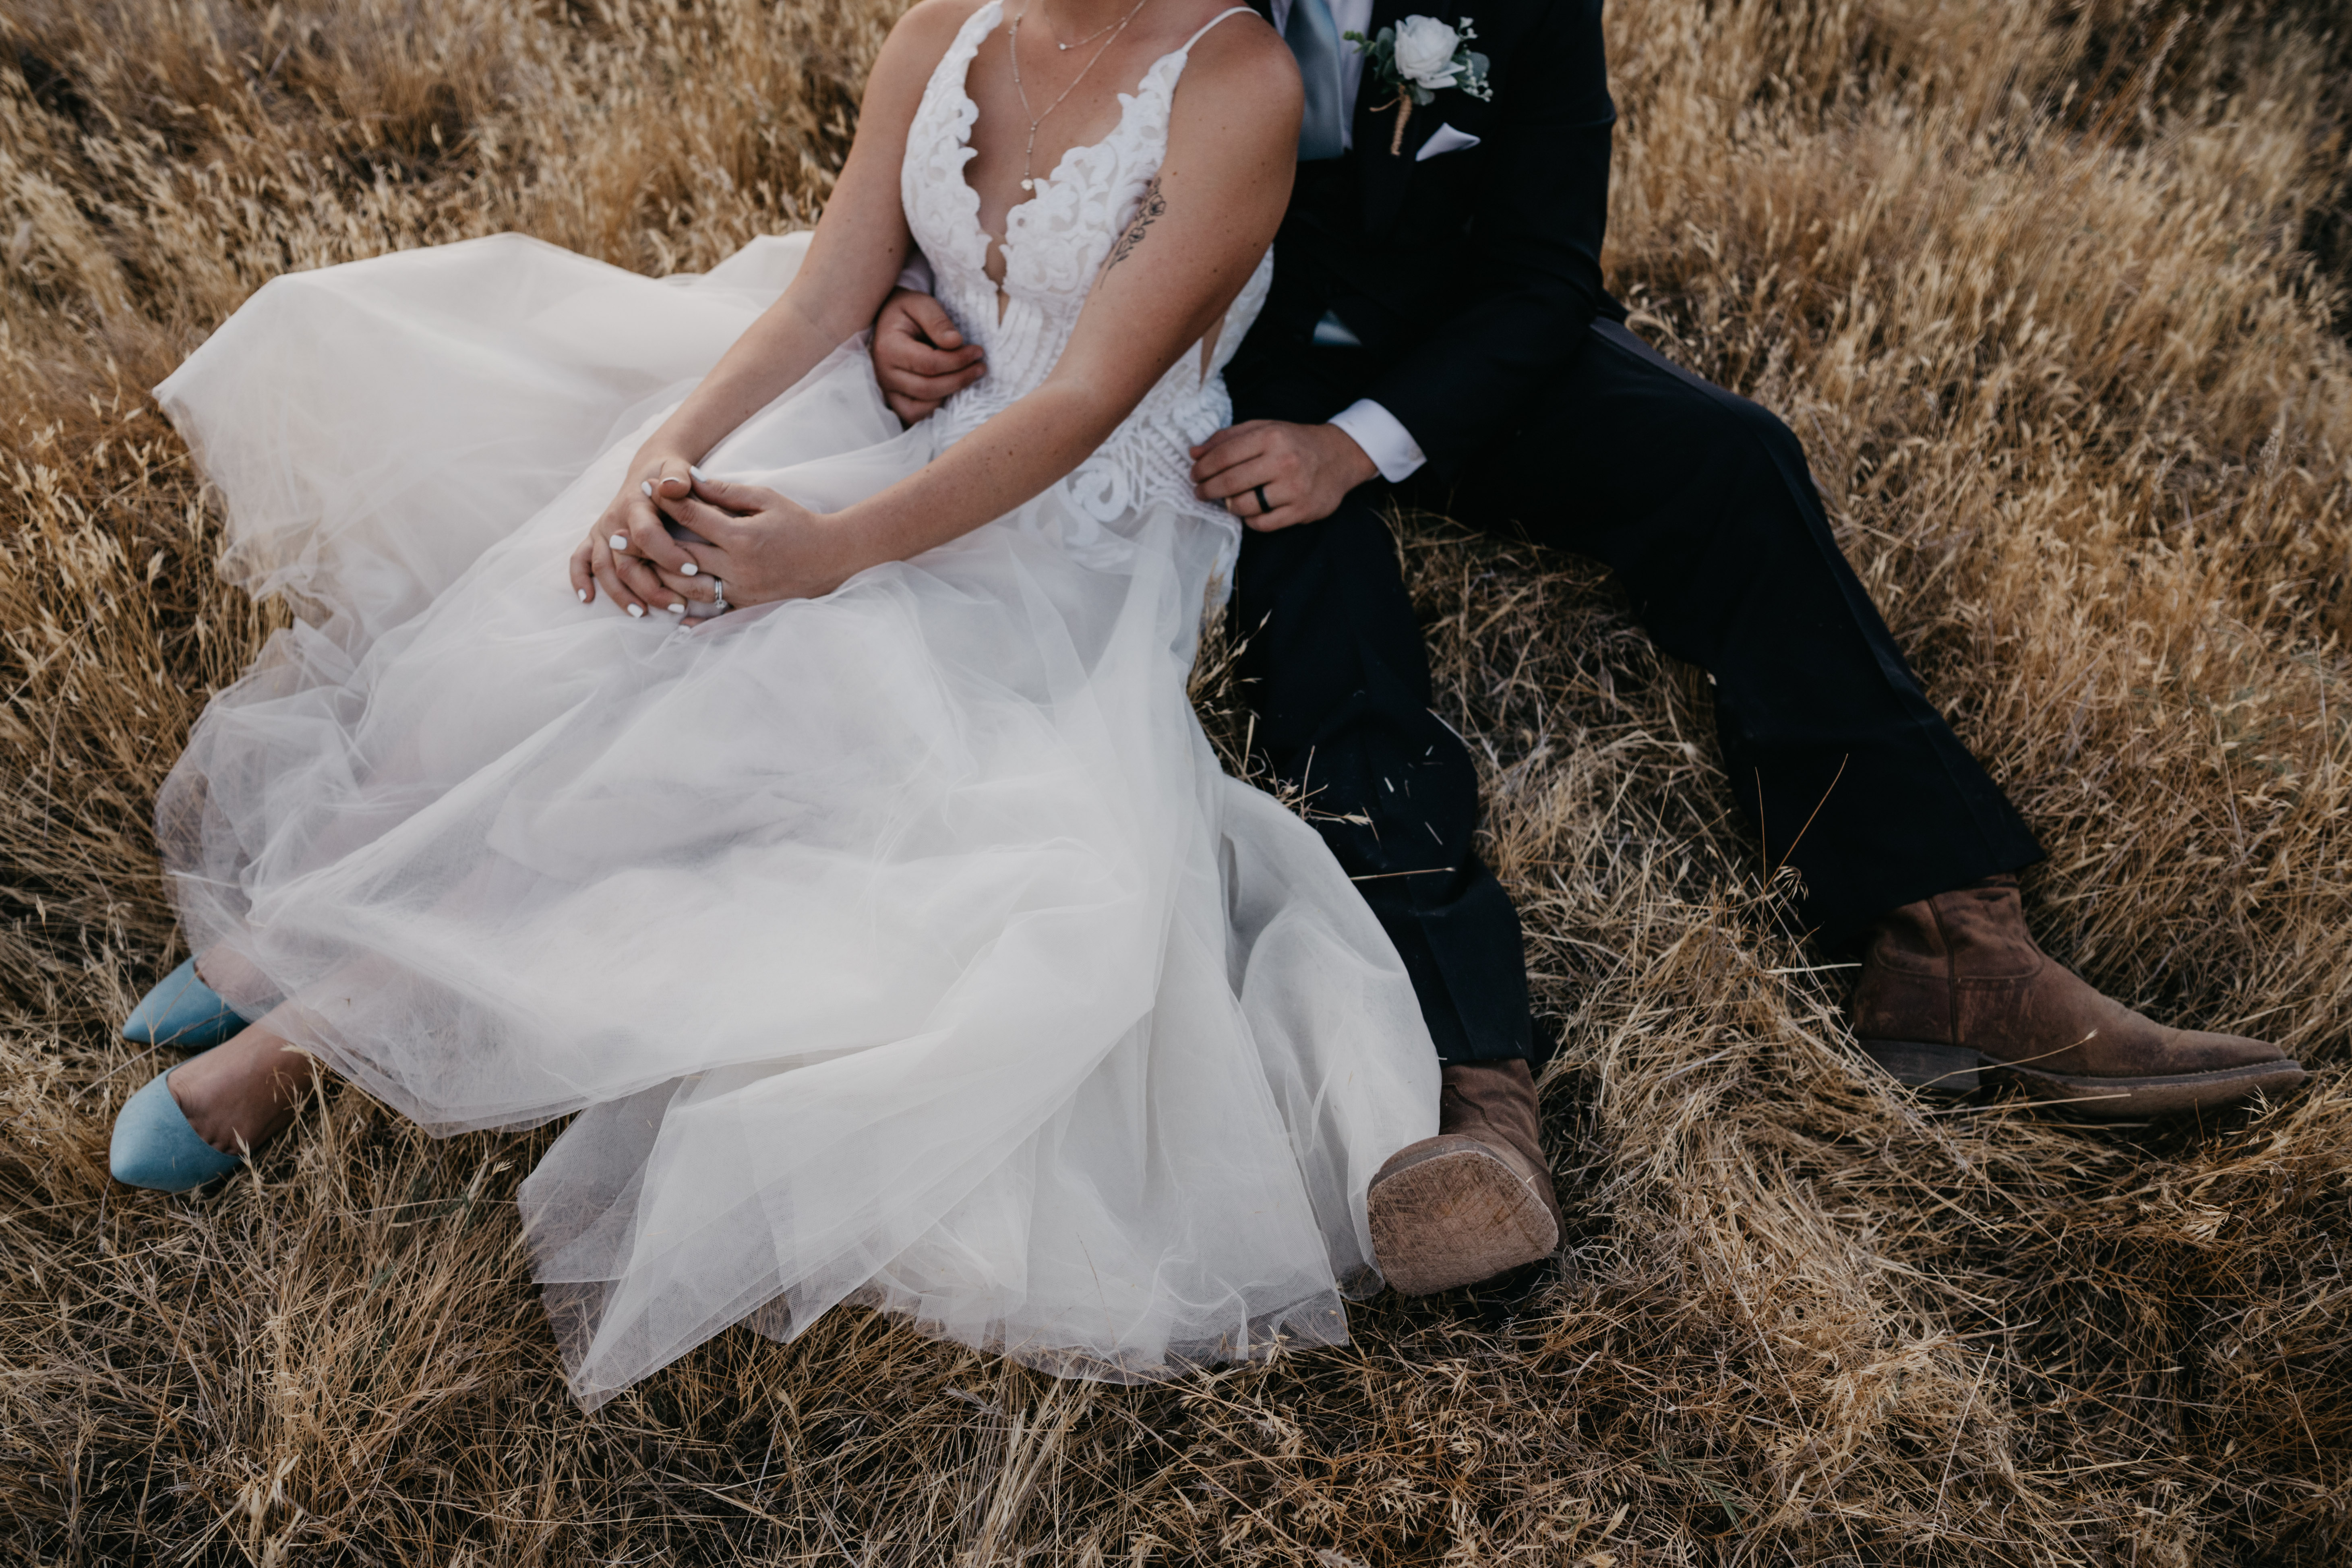 Big Morongo Canyon Preserve Bride and Groom Portrait with their details, image by Fatima Elreda Photo